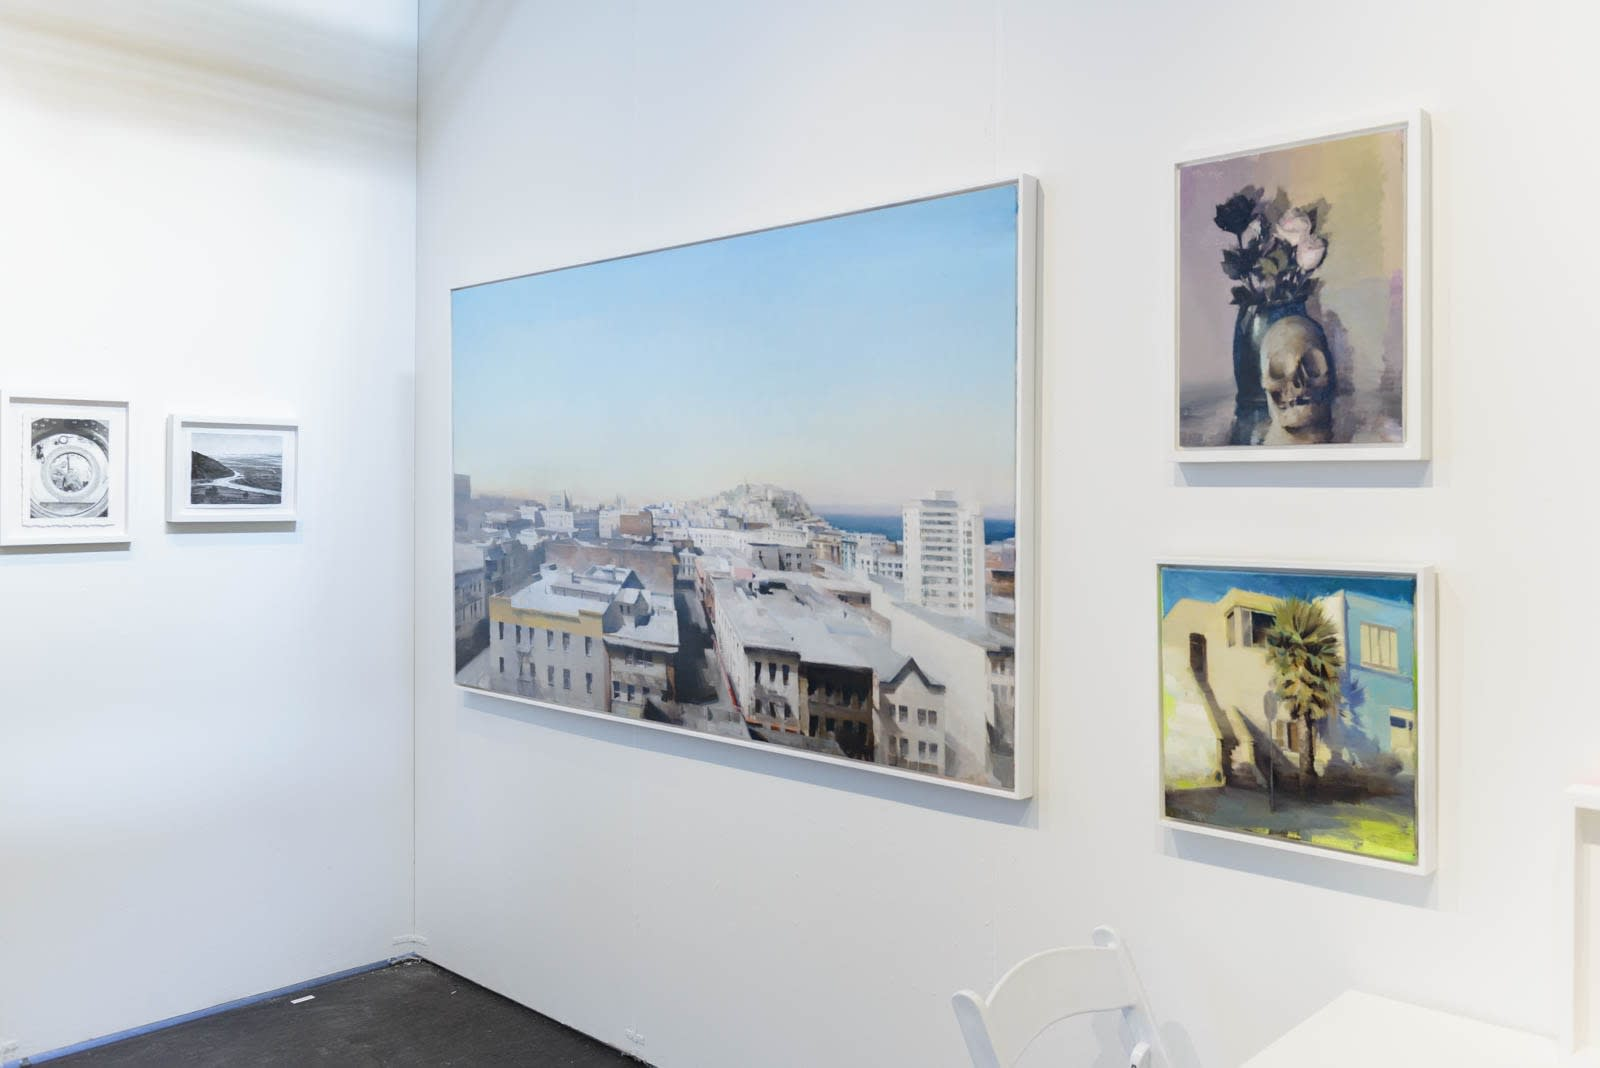 Kim Cogan installation view at art fair